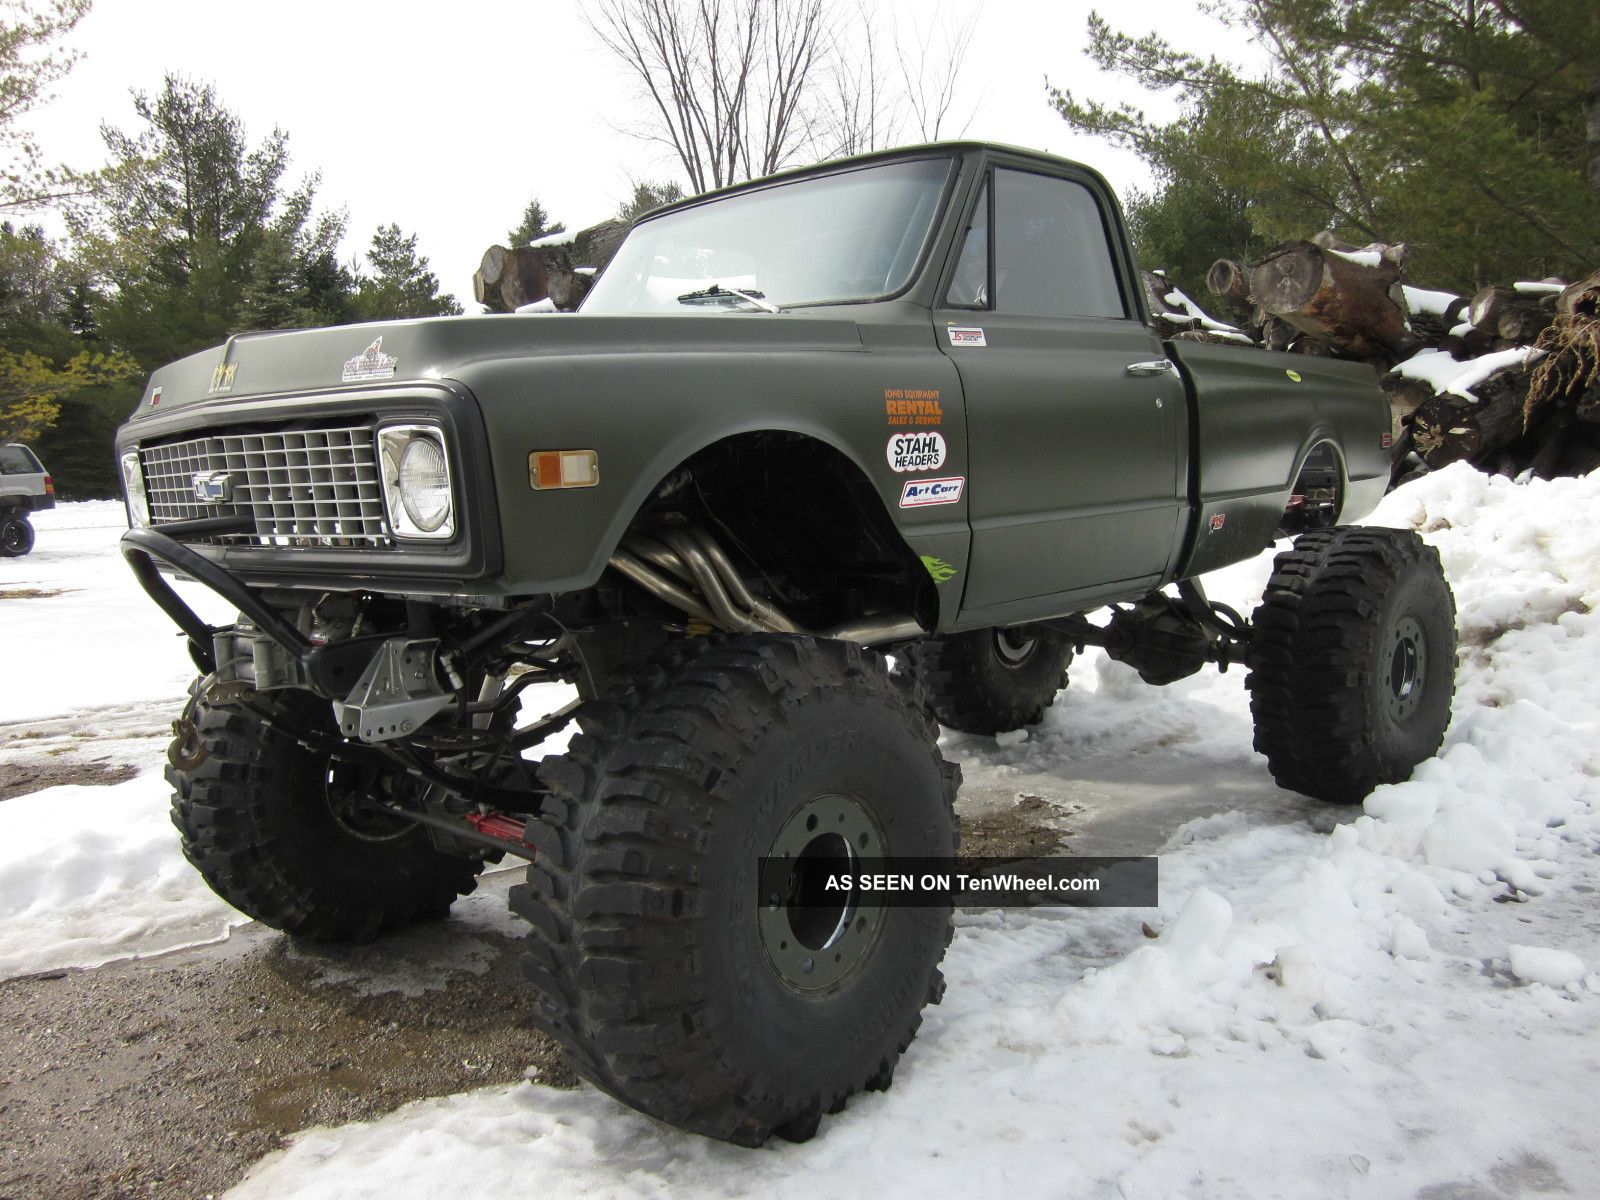 1971 Chevy Off Road Truck C/K Pickup 2500 photo 2